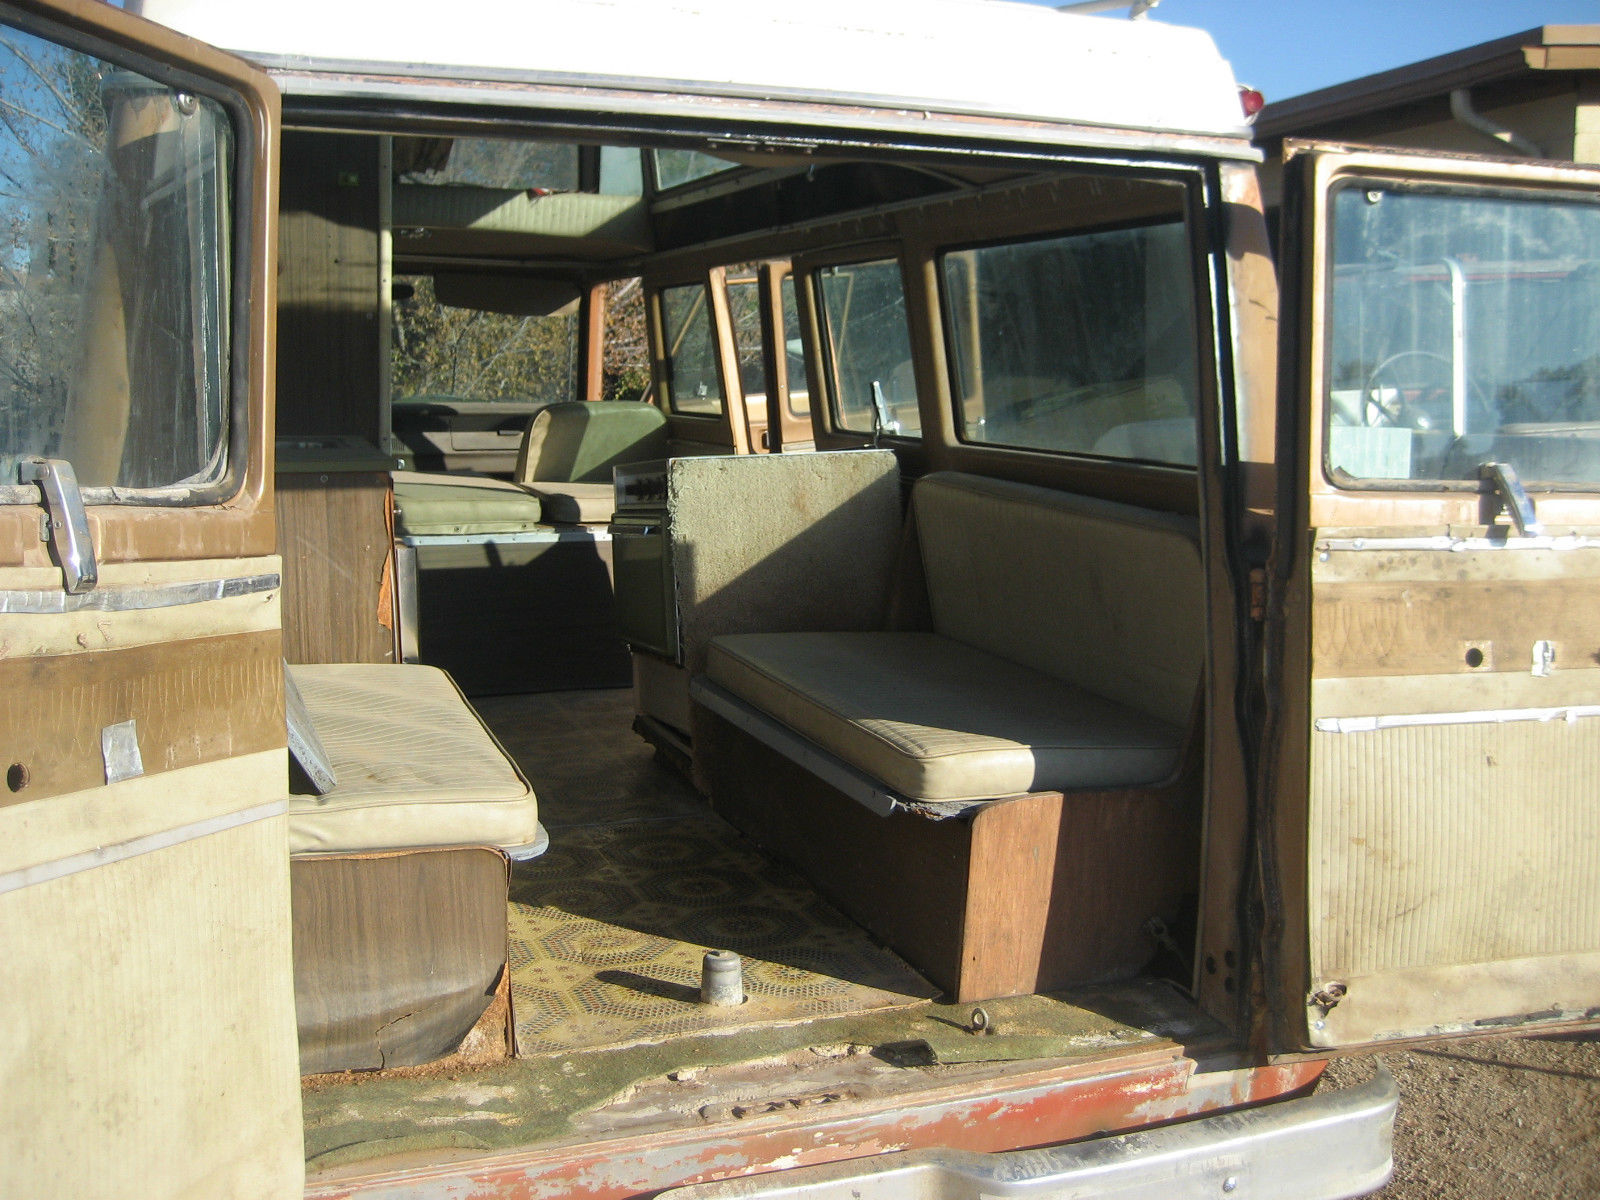 Rare Dodge A100 25 Window Camper Van Rust Free 100 Complete 1969 Runs Great For Sale In Mesa Arizona United States